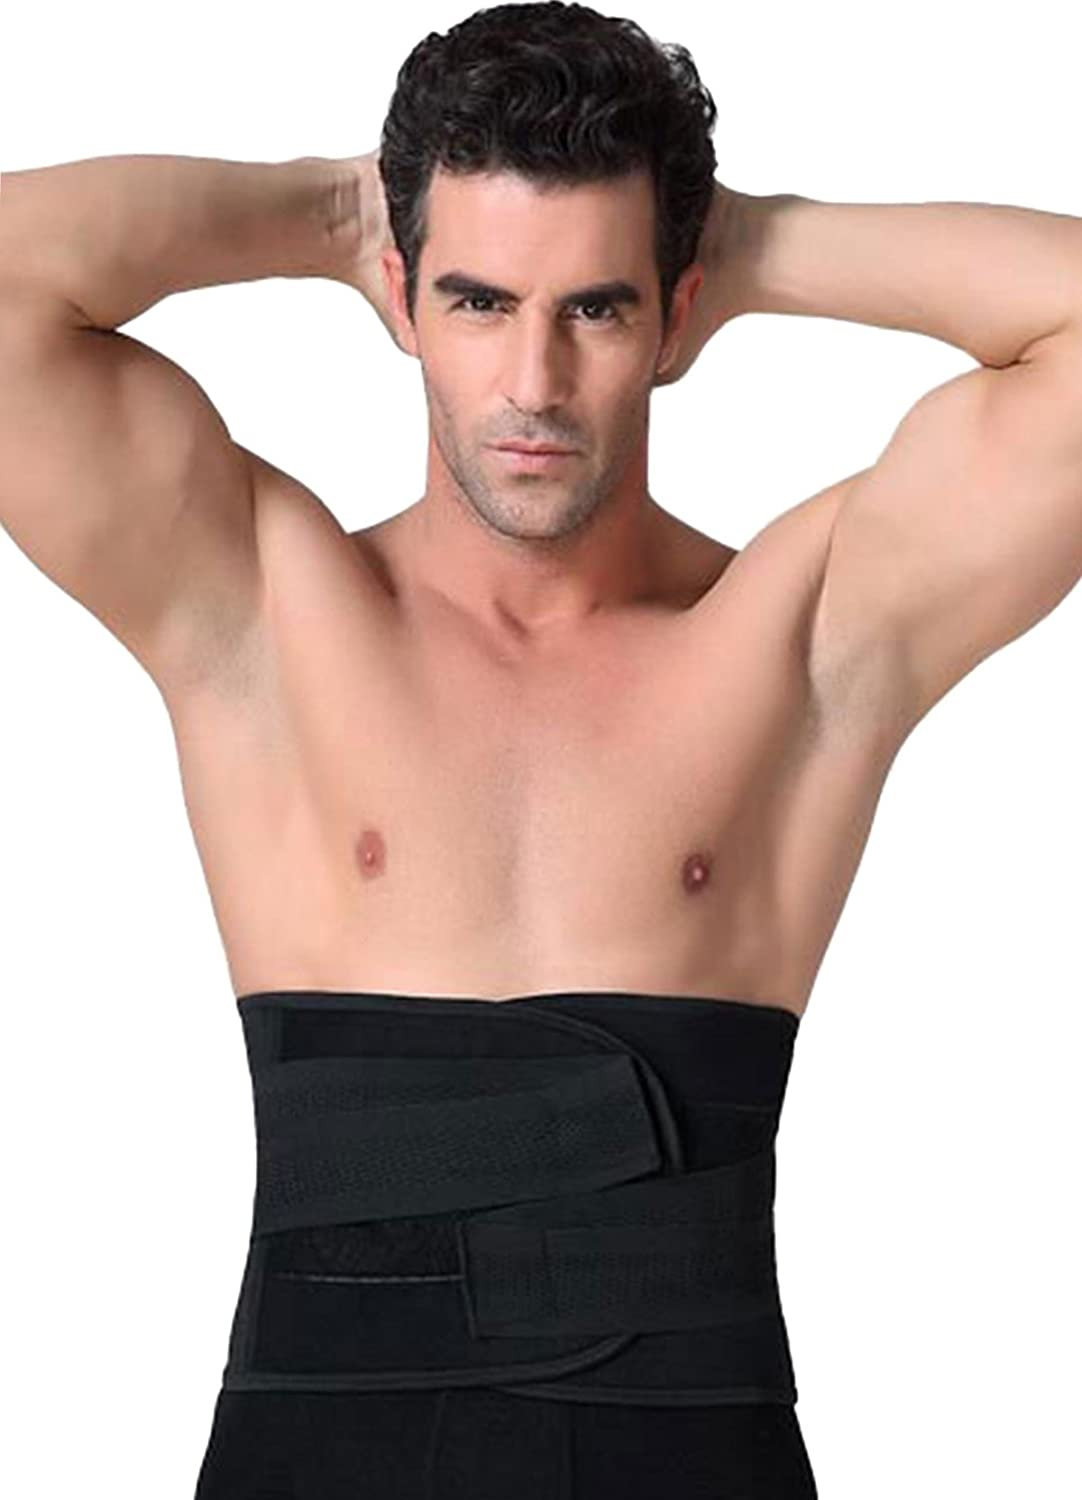 ac614d570b Panegy Men s Waist Trainer Girdle Beer Belly Trimmer Belt with ...